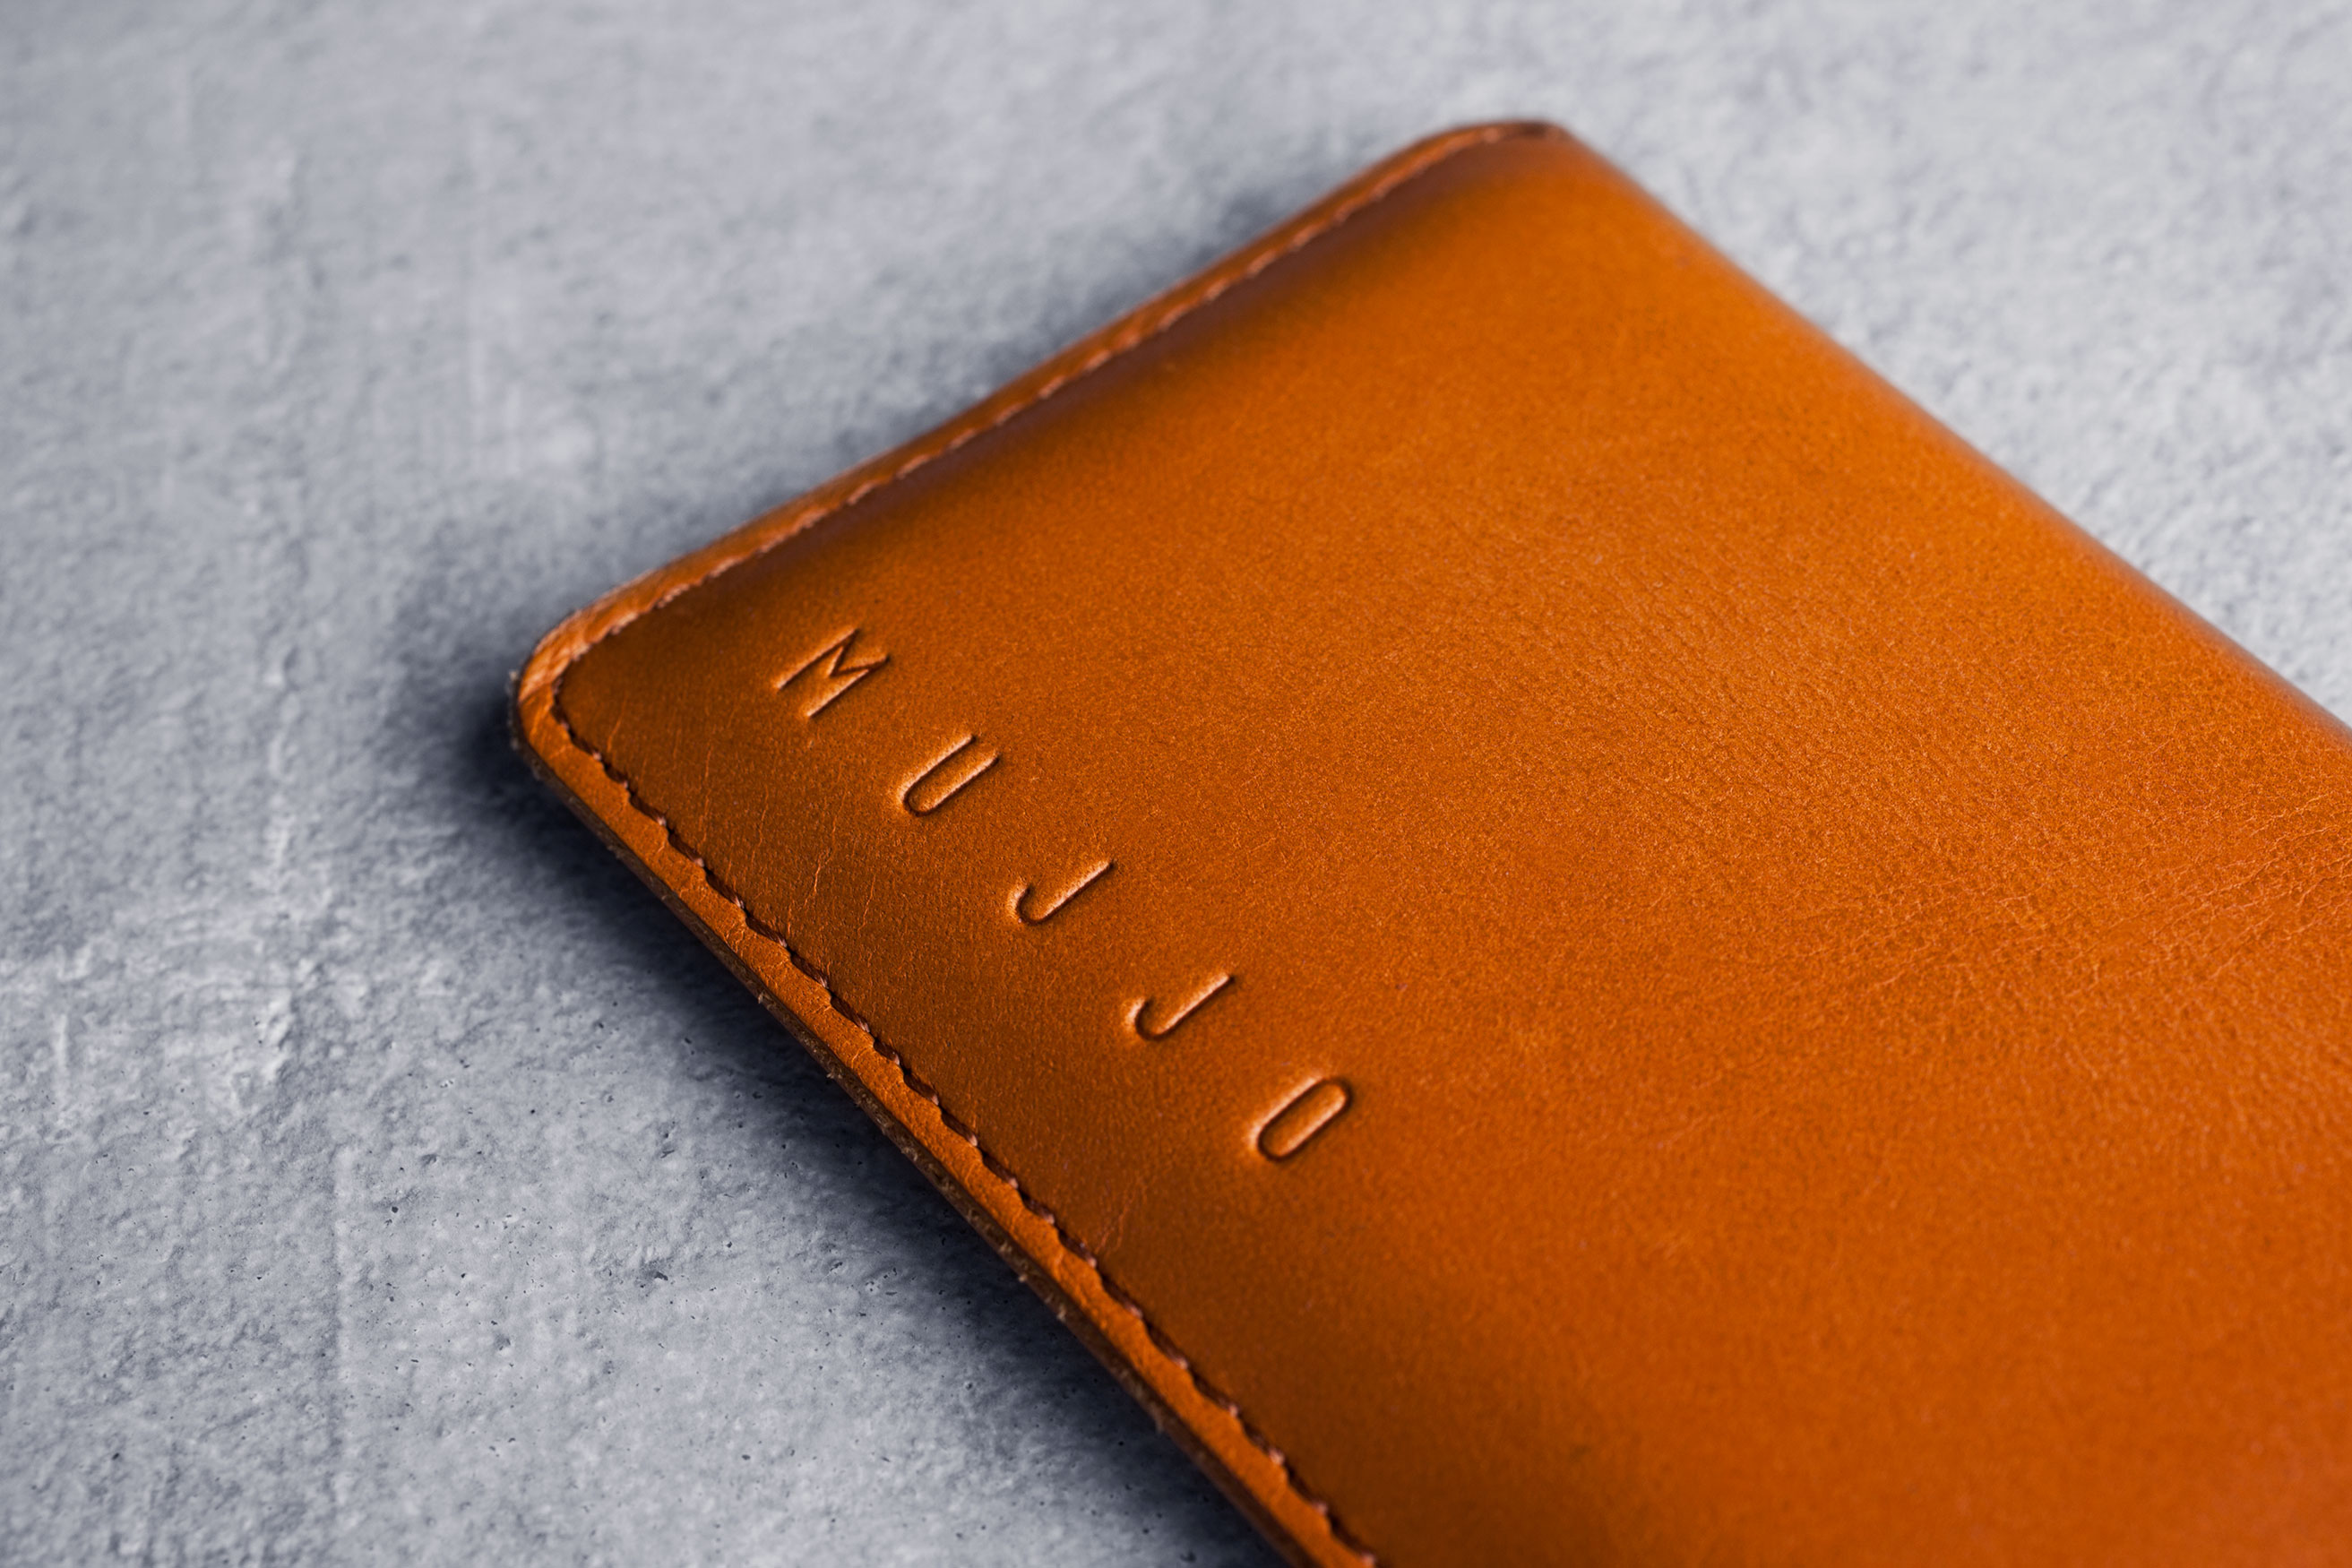 Leather-Wallet-Sleeve-for-iPhone-6-Tan-Lifestyle-502